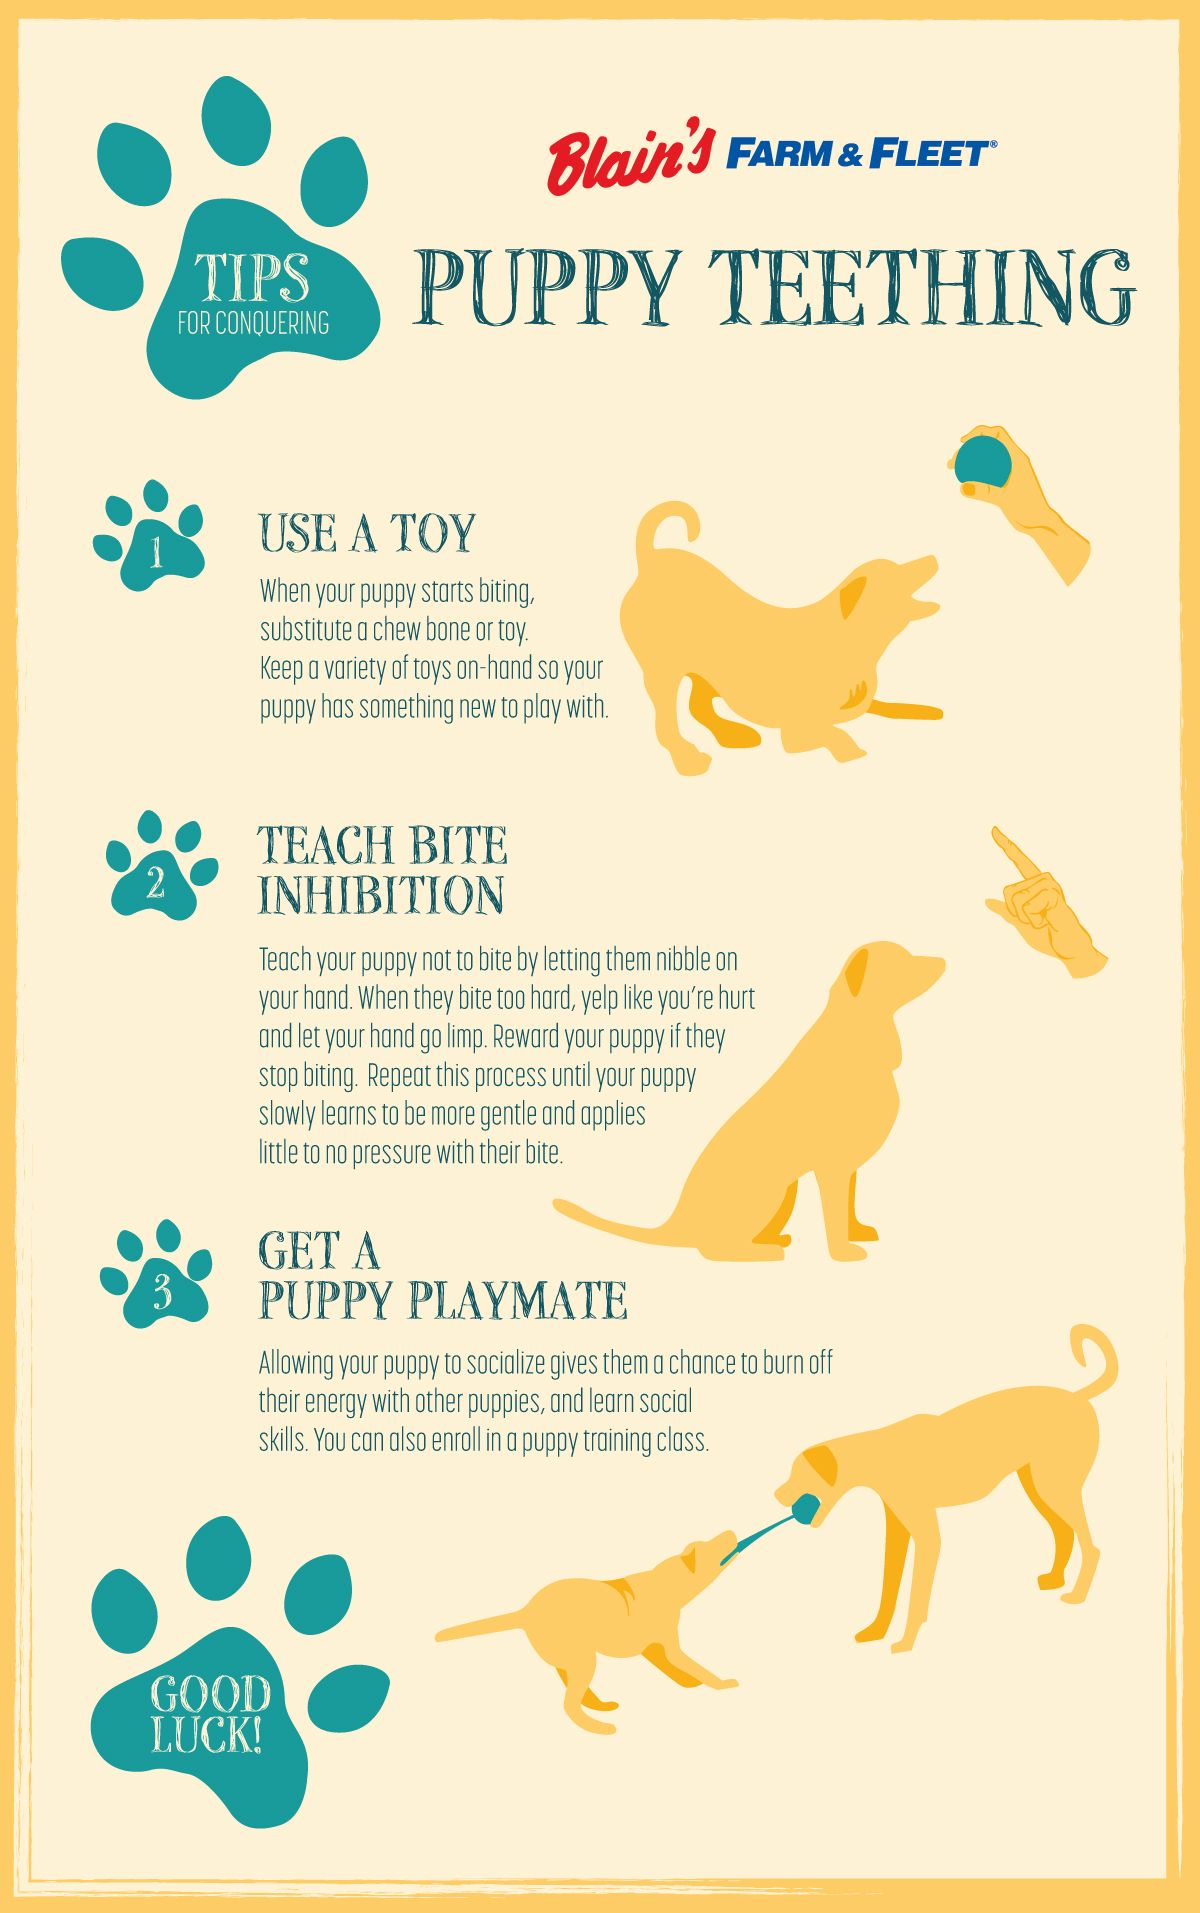 How To Deal With Puppy Teething Blain S Farm Fleet Blog Puppy Teething Puppy Training Tips Puppy Training